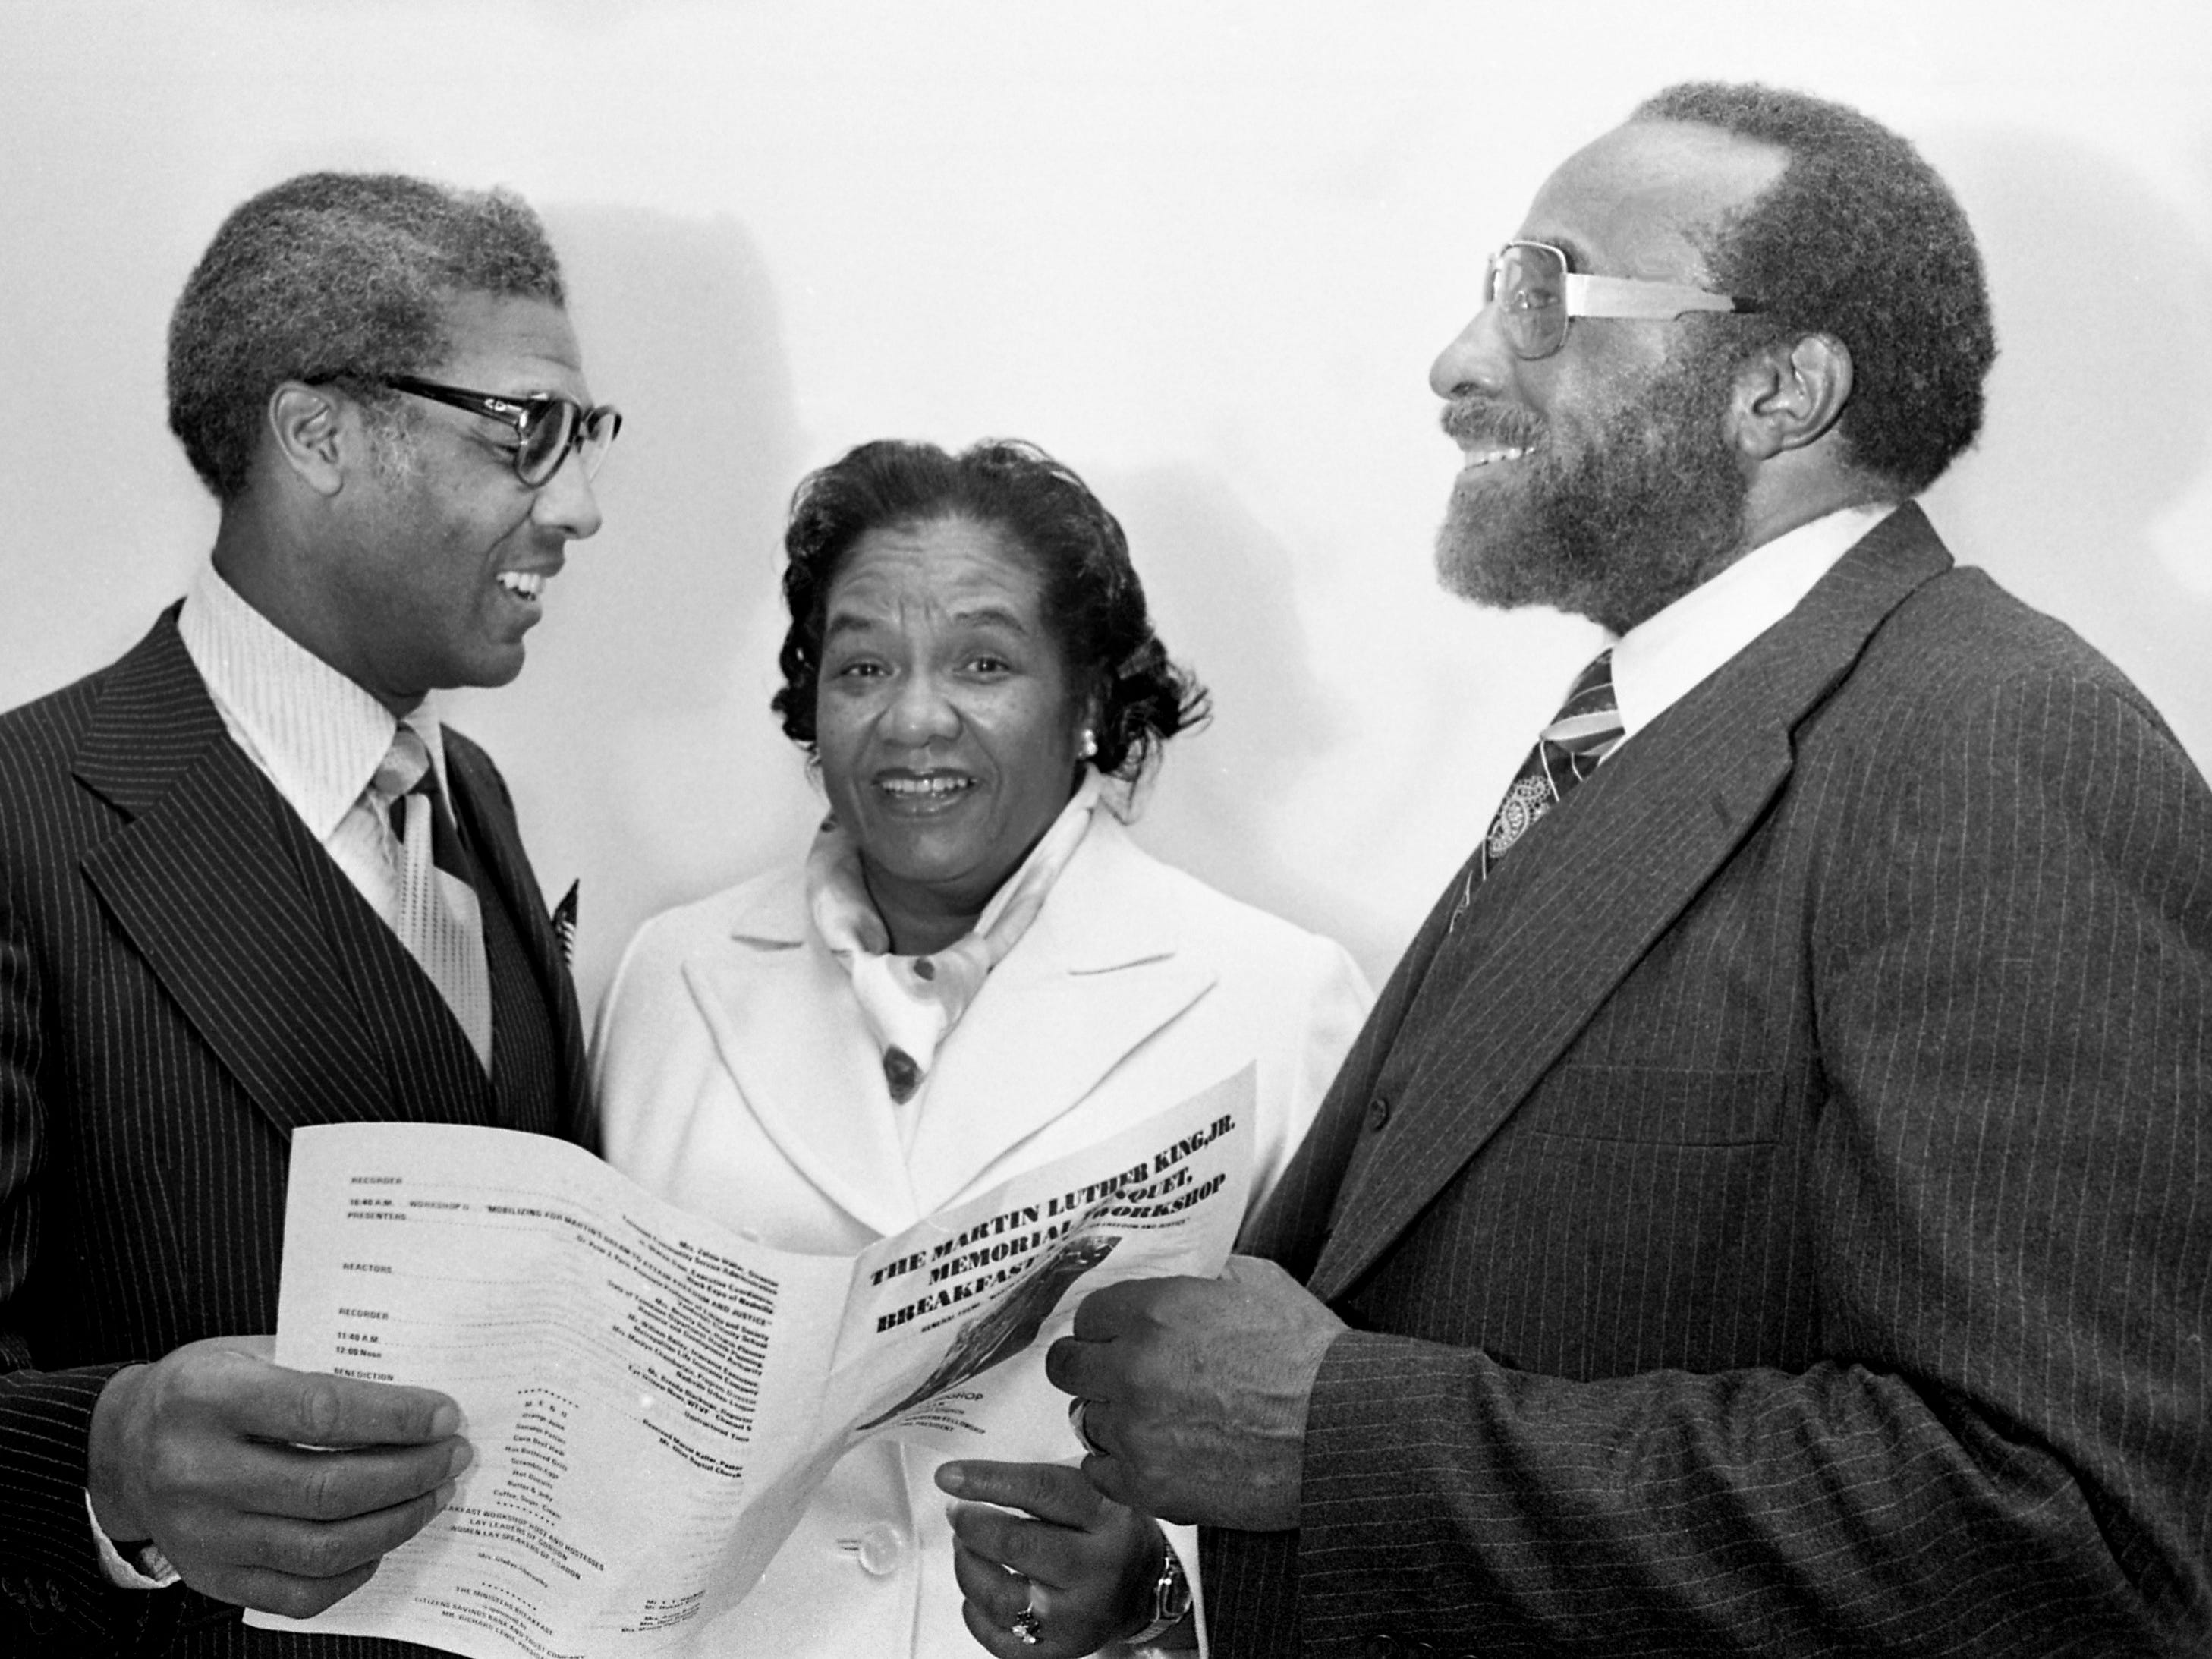 The Rev. Kelly Miller Smith, left, the keynote speaker, Dr. Dorothy Brown and the Rev. Dogan W. Williams, president of the Interdenominational Ministers Fellowship, share a moment during the Martin Luther King Jr. Memorial Awards Banquet on April 6, 1979, on the campus of Tennessee State University. Dr. Brown was the recipient of a human relations award from the IMF, which sponsored the banquet.